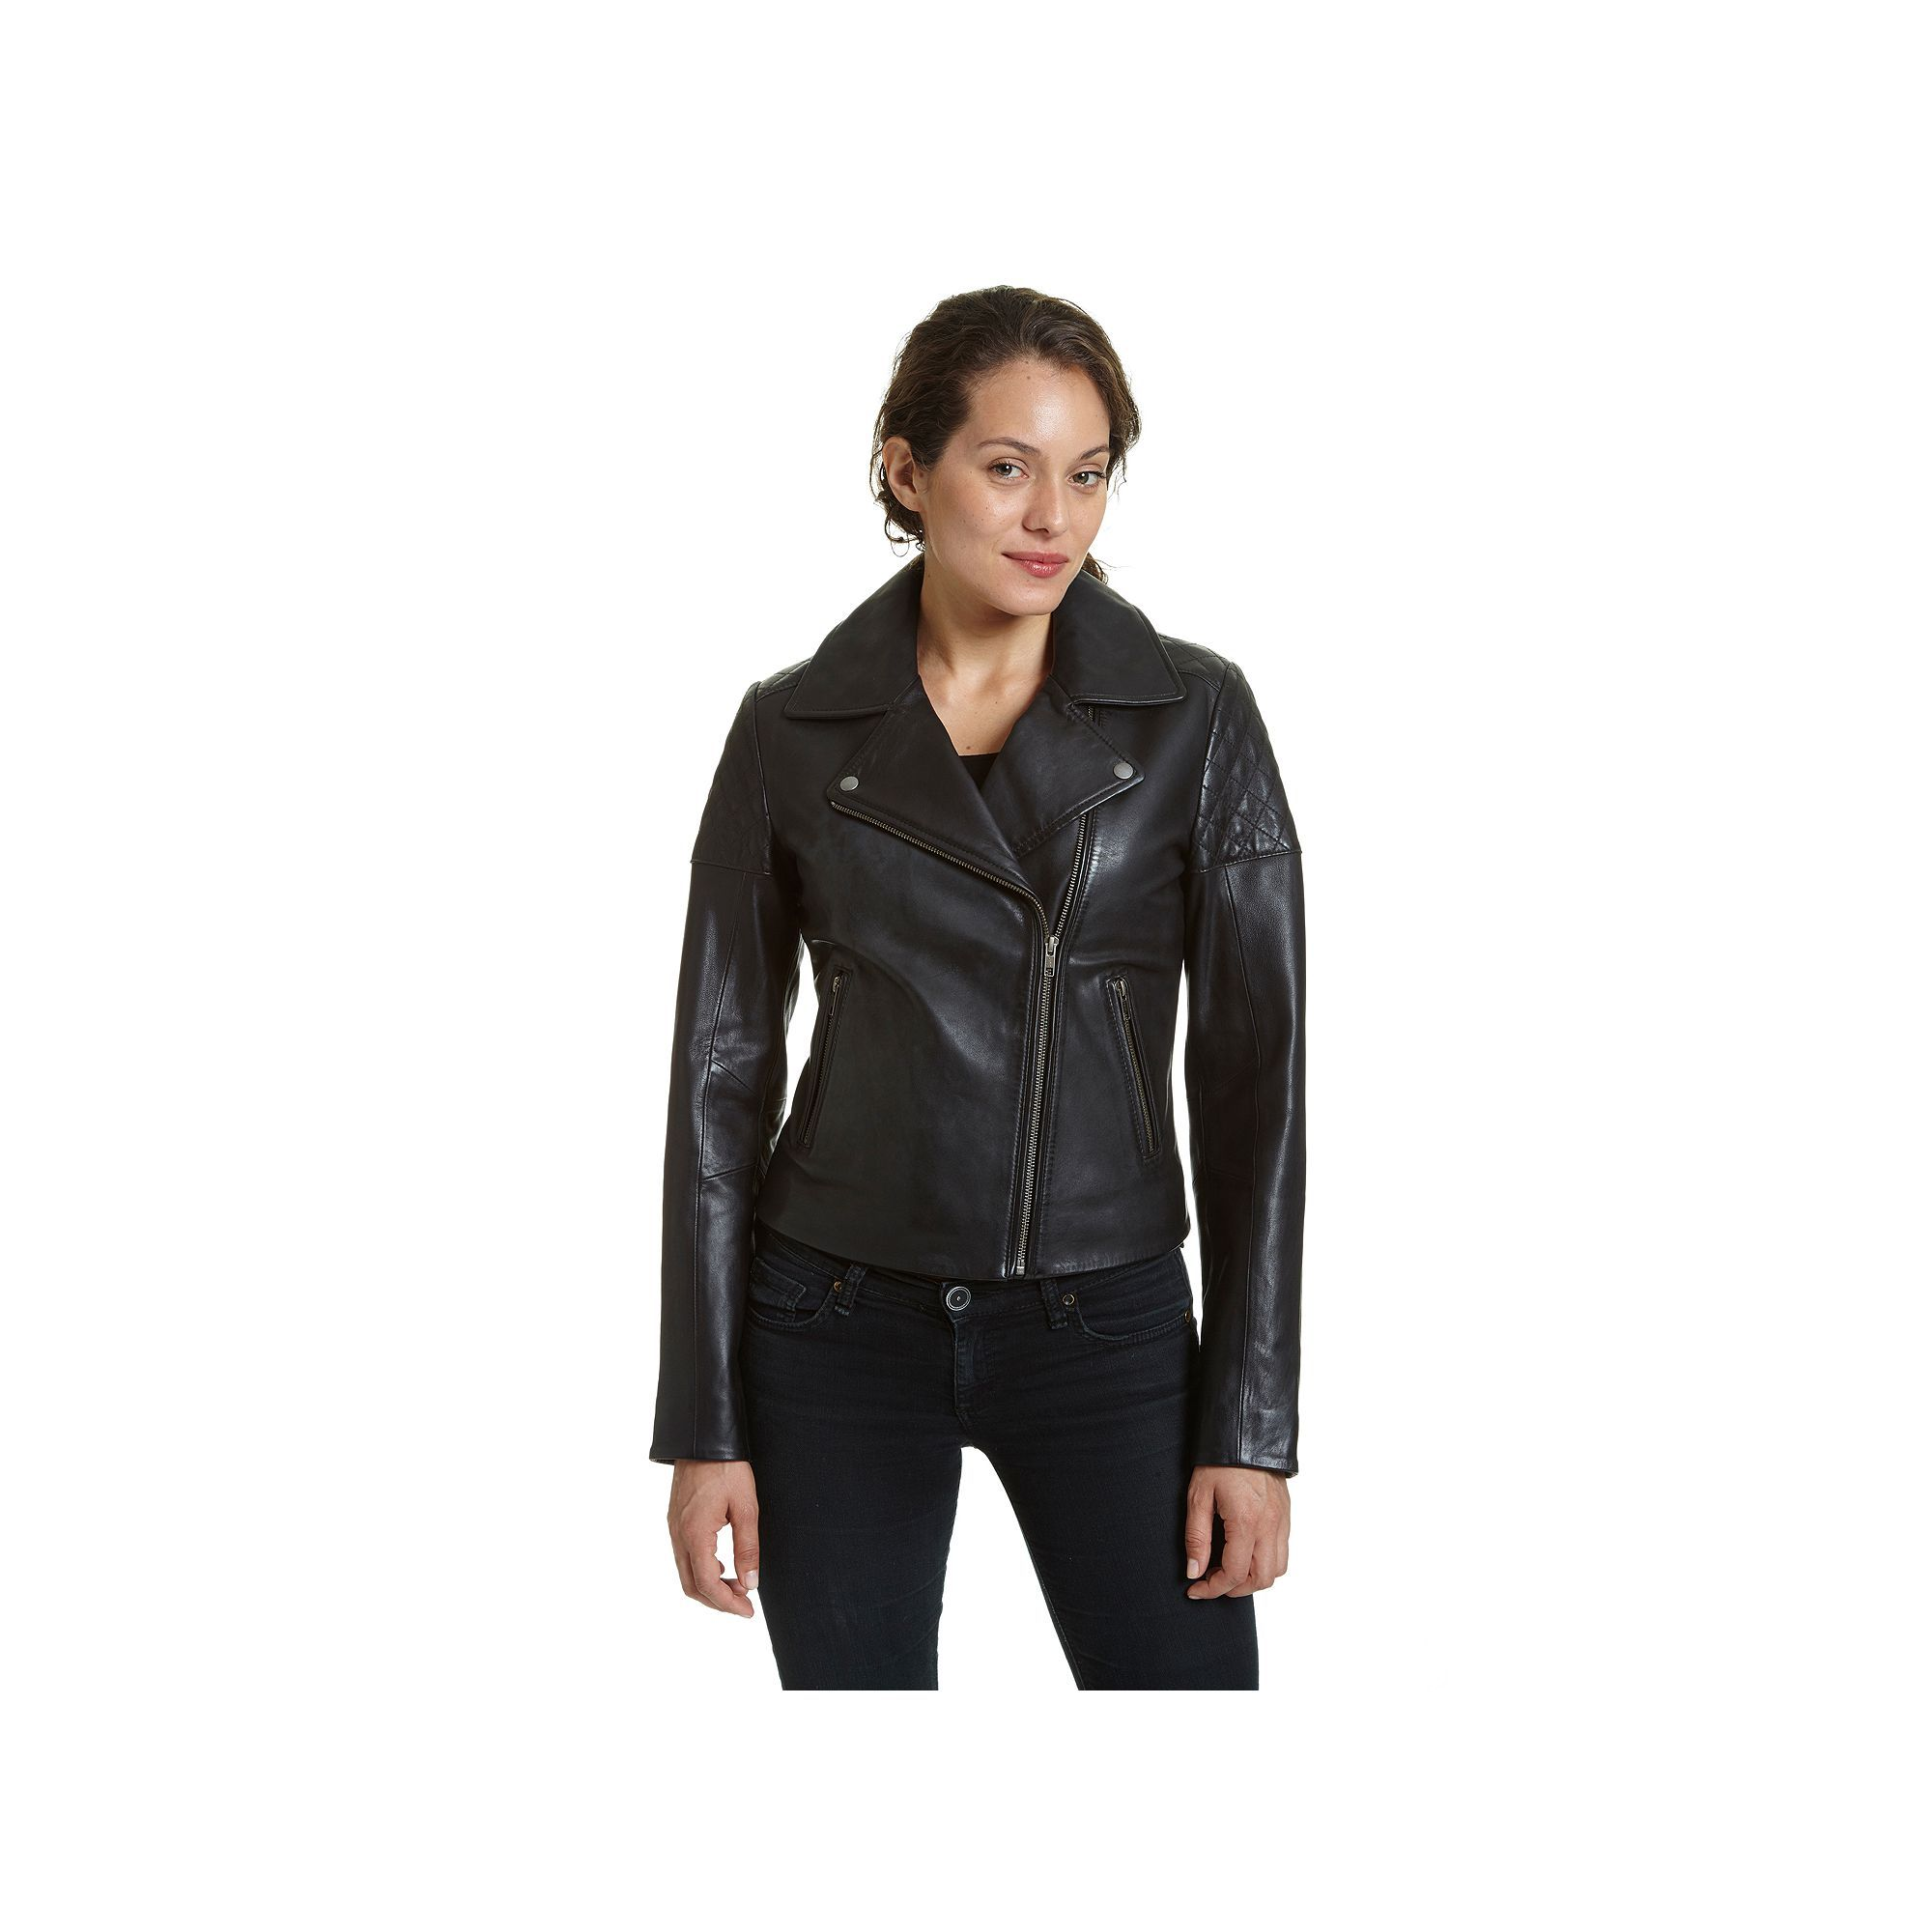 Women's Excelled Asymmetrical Leather Motorcycle Jacket, Size: Medium, Black